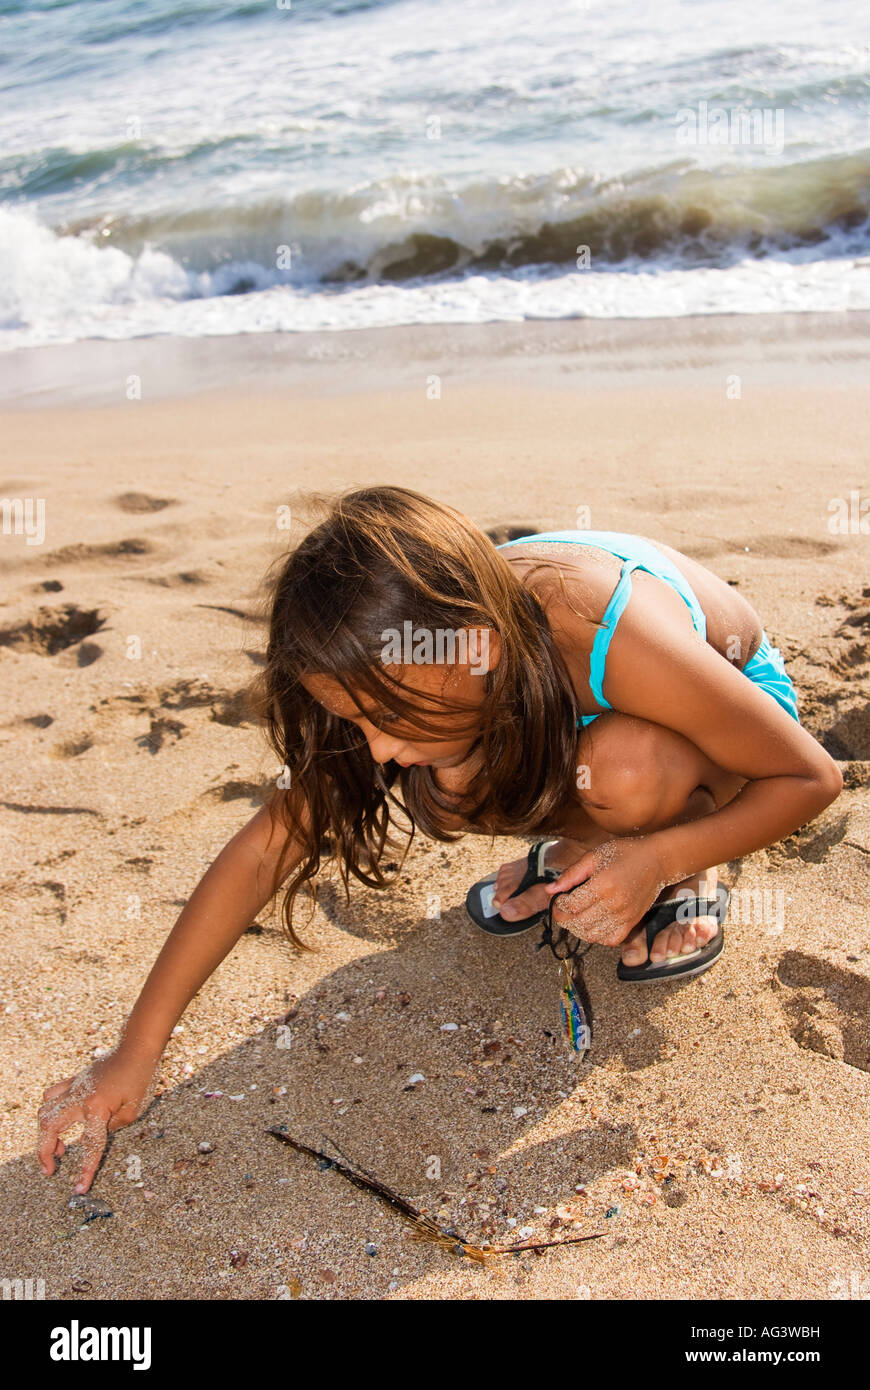 young mexican girl on a summer beach trip crouched playing in sand by Pacific ocean shoreline - Stock Image